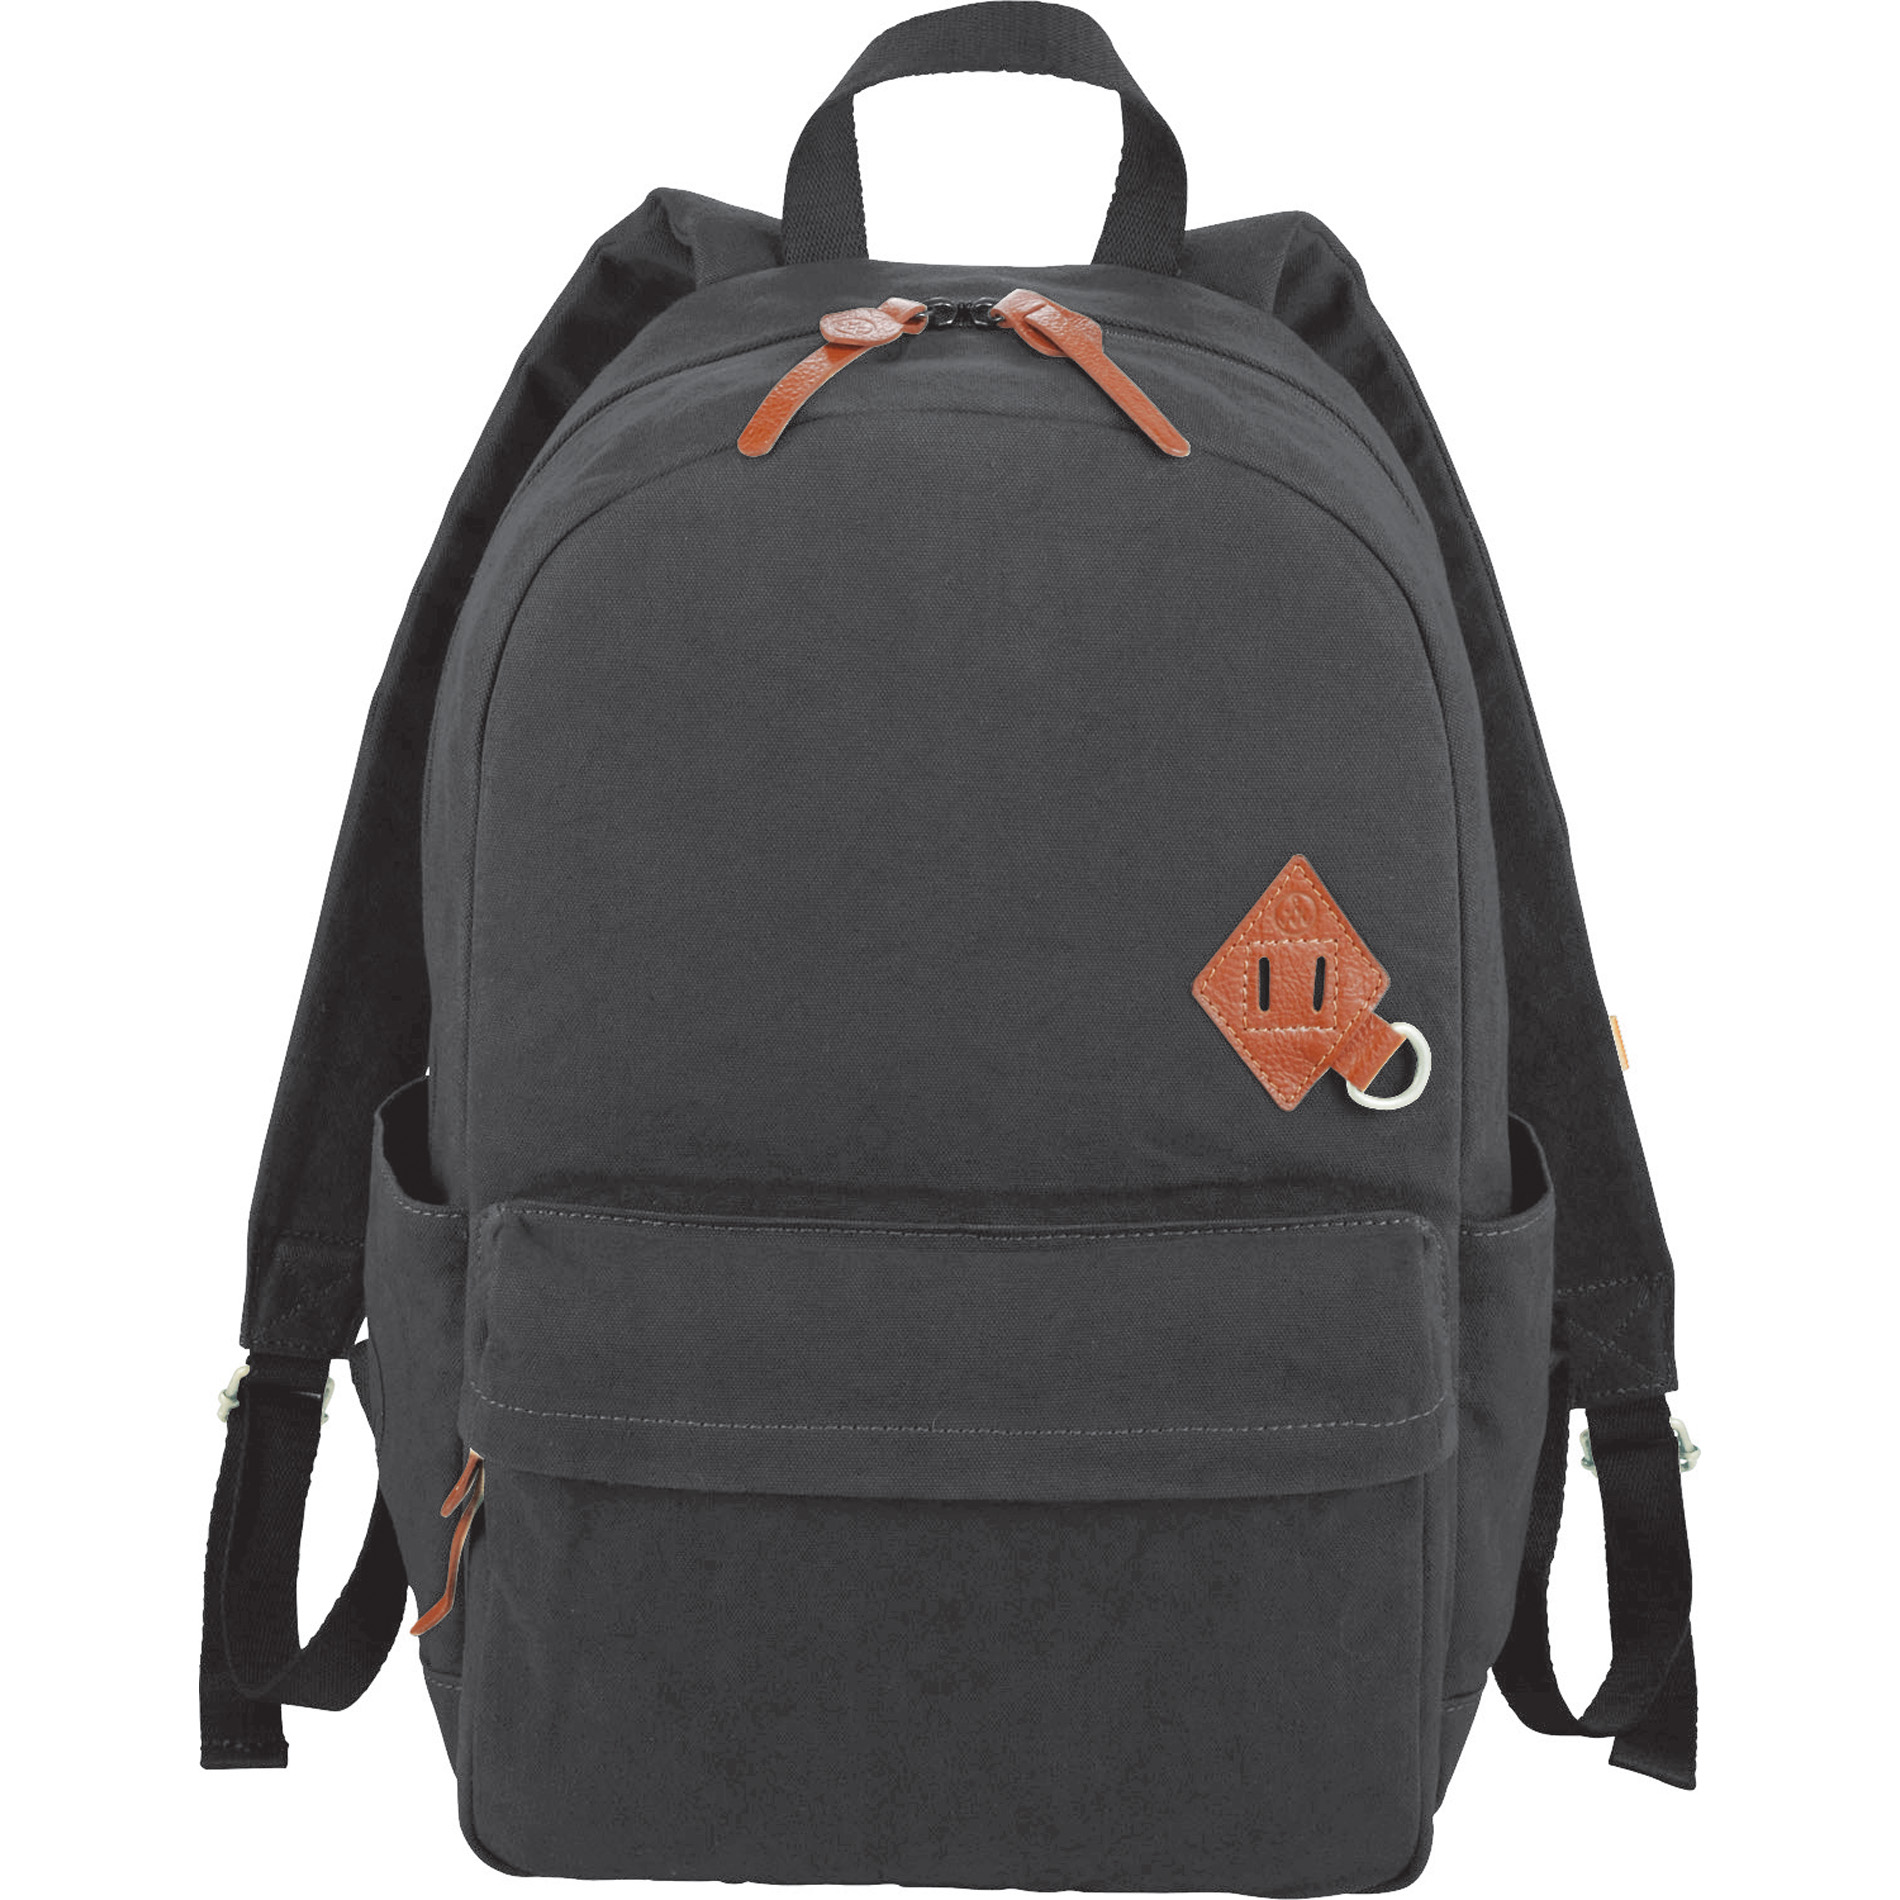 "Alternative 9004-11 - Basic 15"" Cotton Computer Backpack"